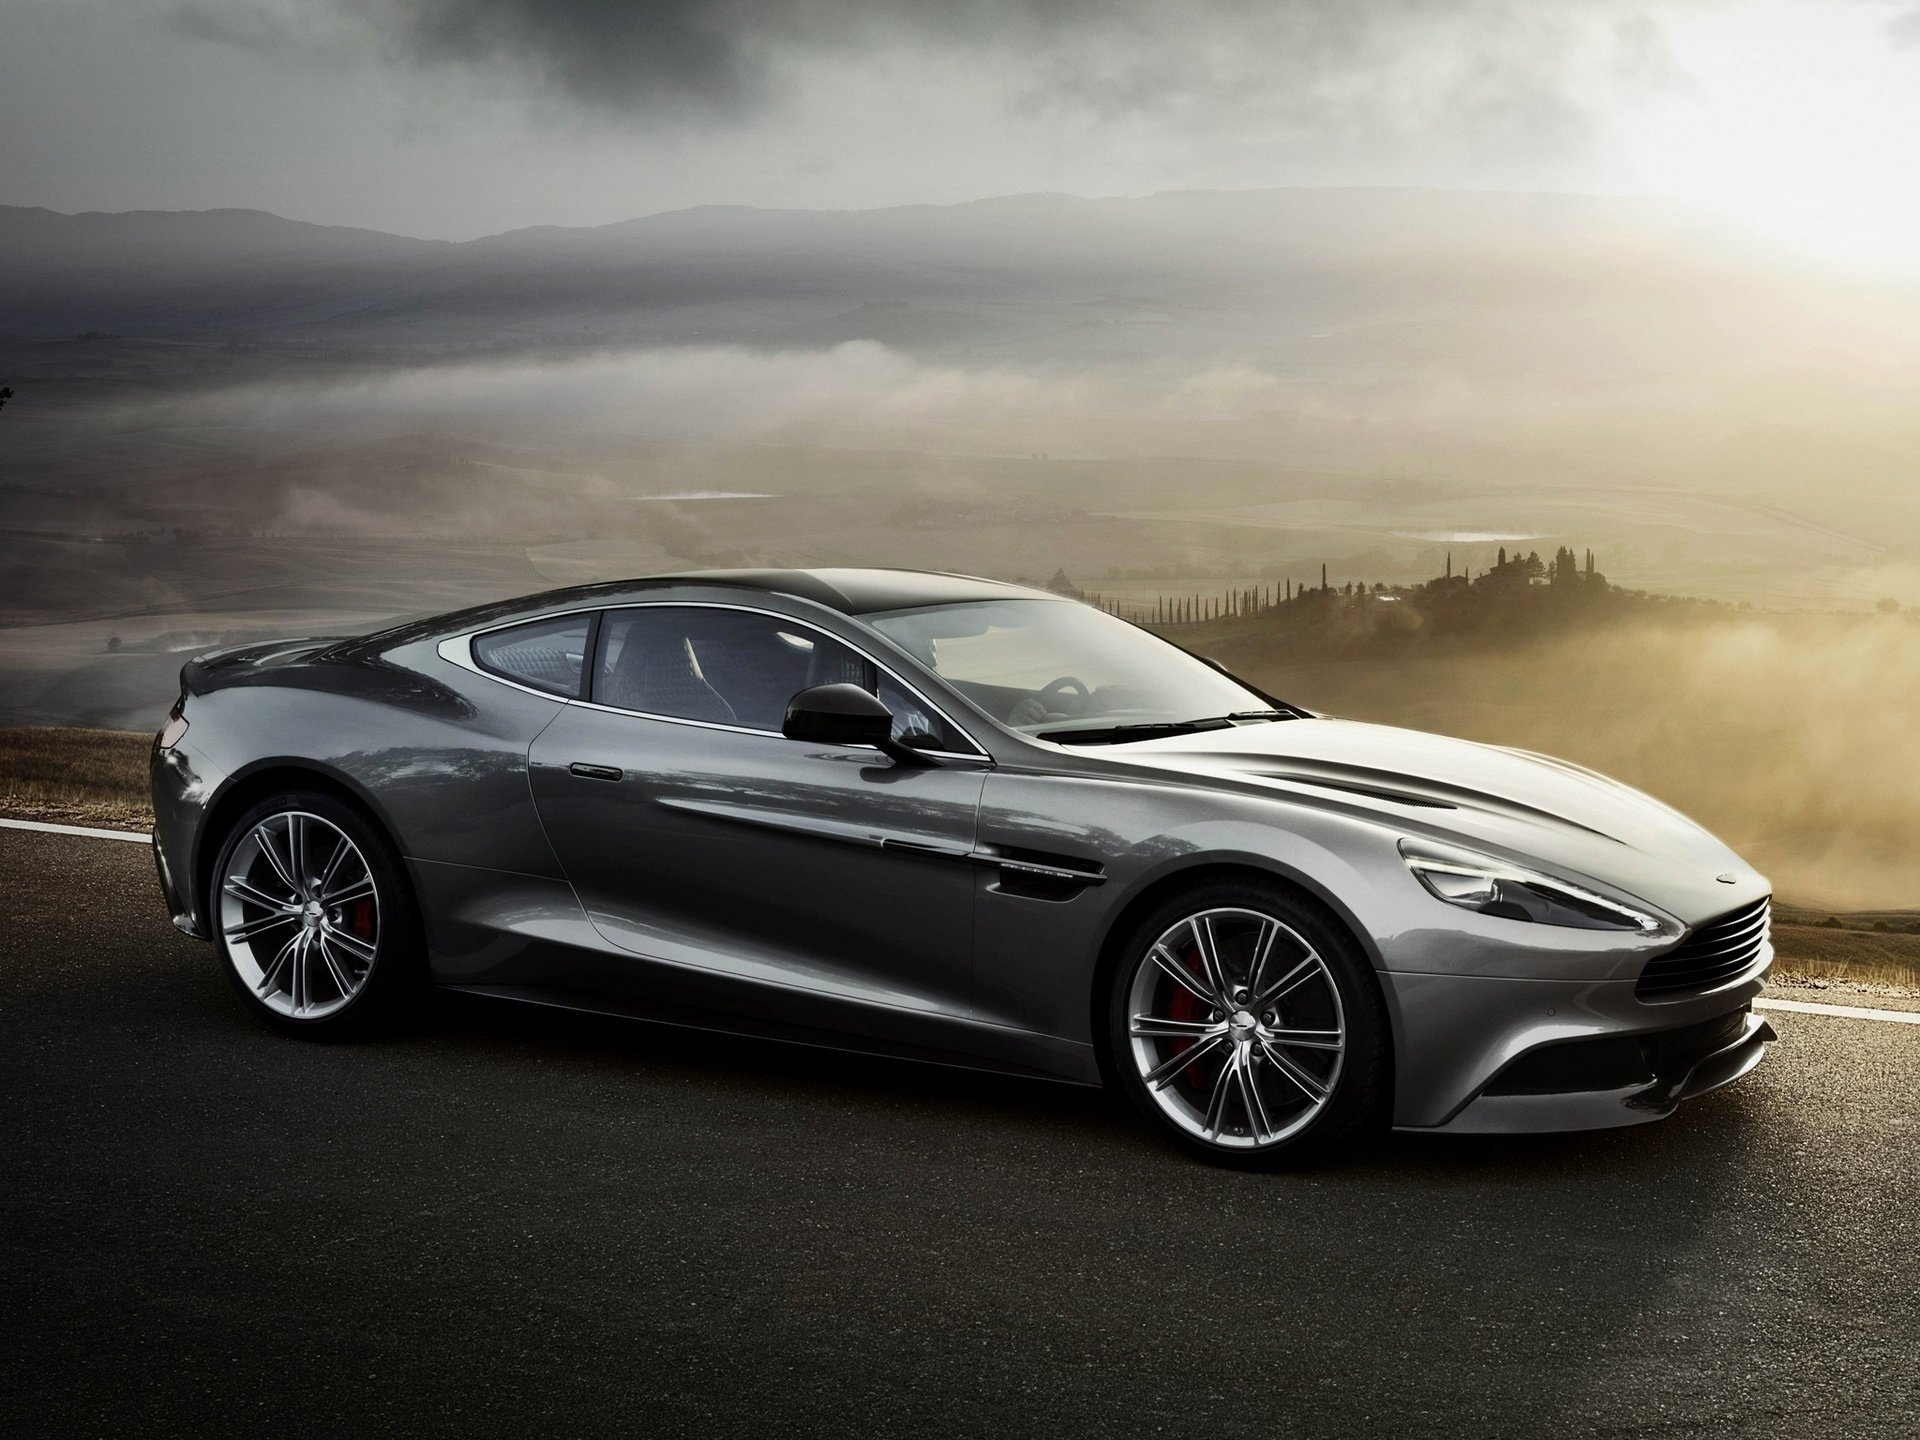 aston martin vanquish hd wallpaper | background image | 1920x1440